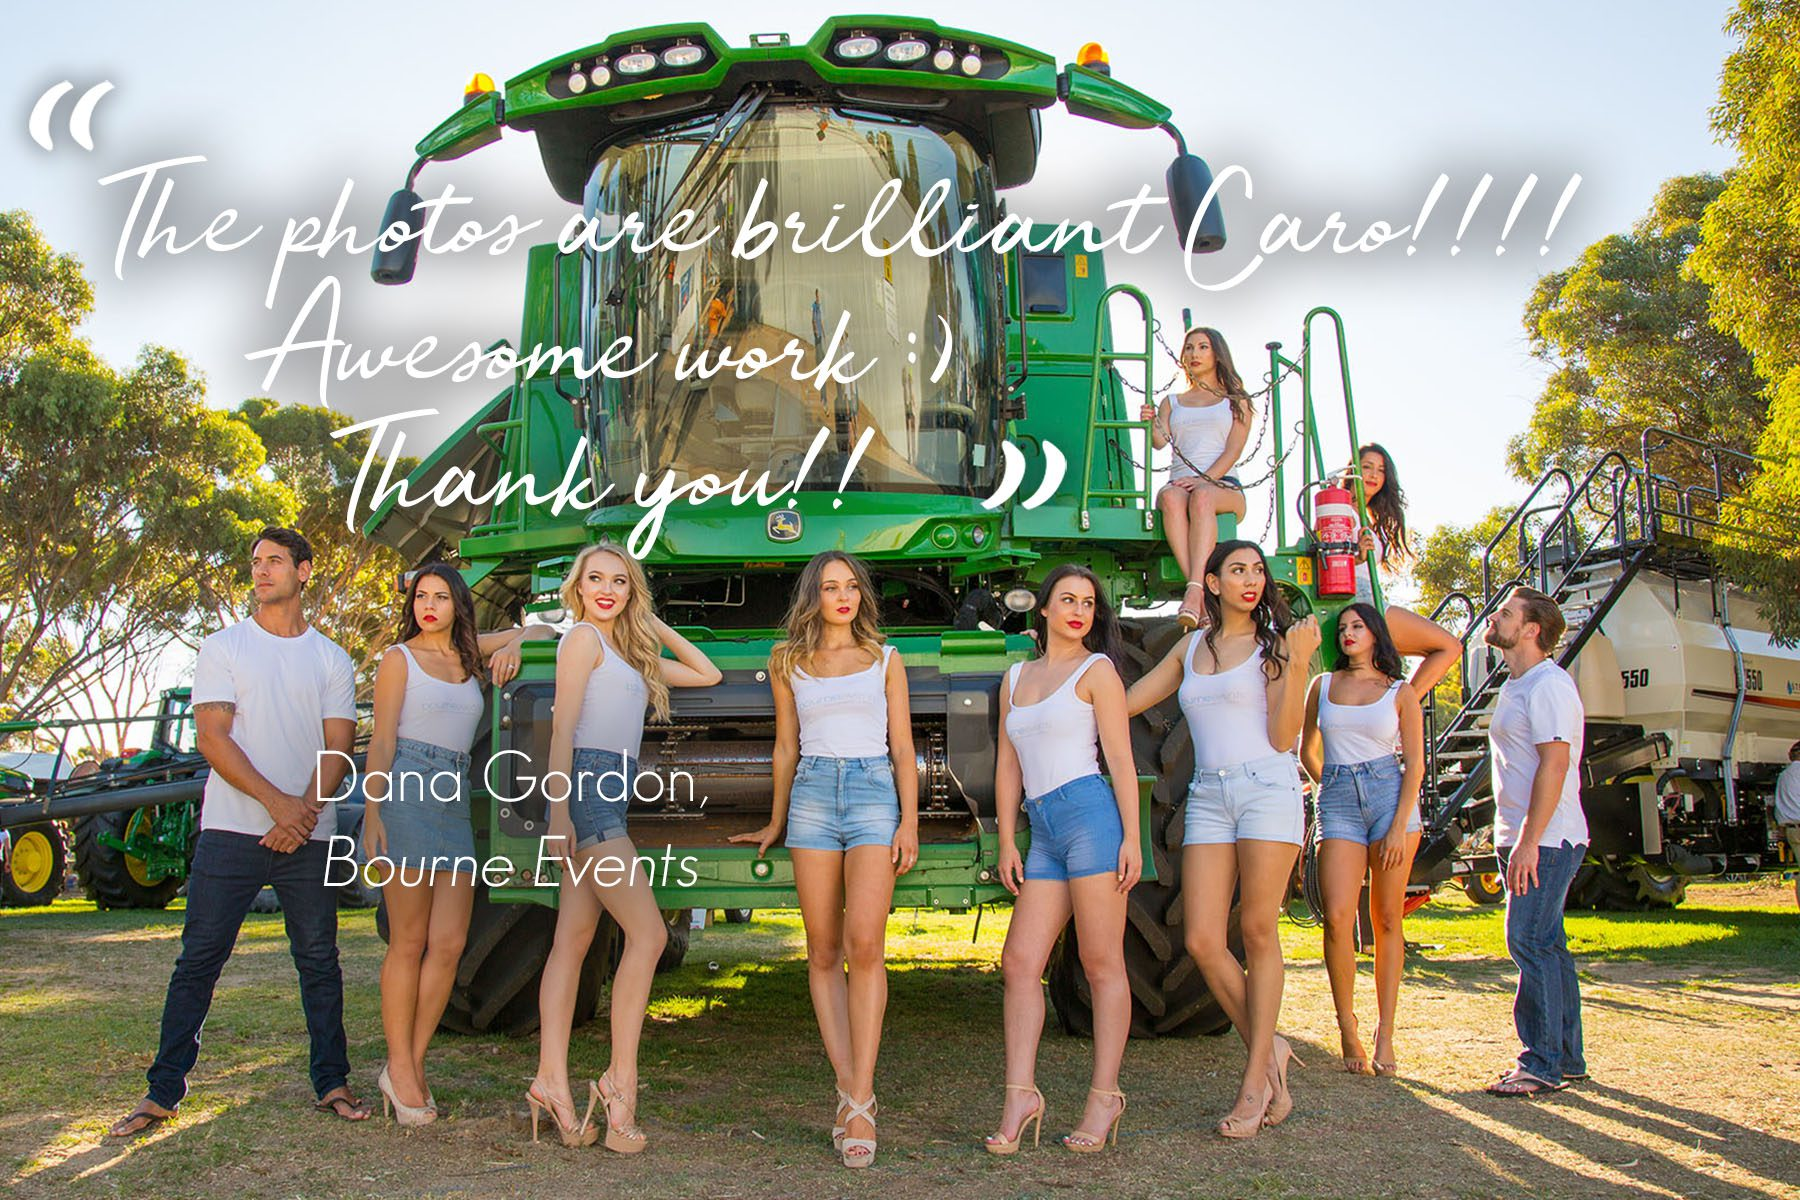 "Image of models in front of John Deere Harvester with quote ""The photos are brilliant Caro!!!! Awesome work :)  Thank you!!"" from Dana Gordon of Bourne Events."